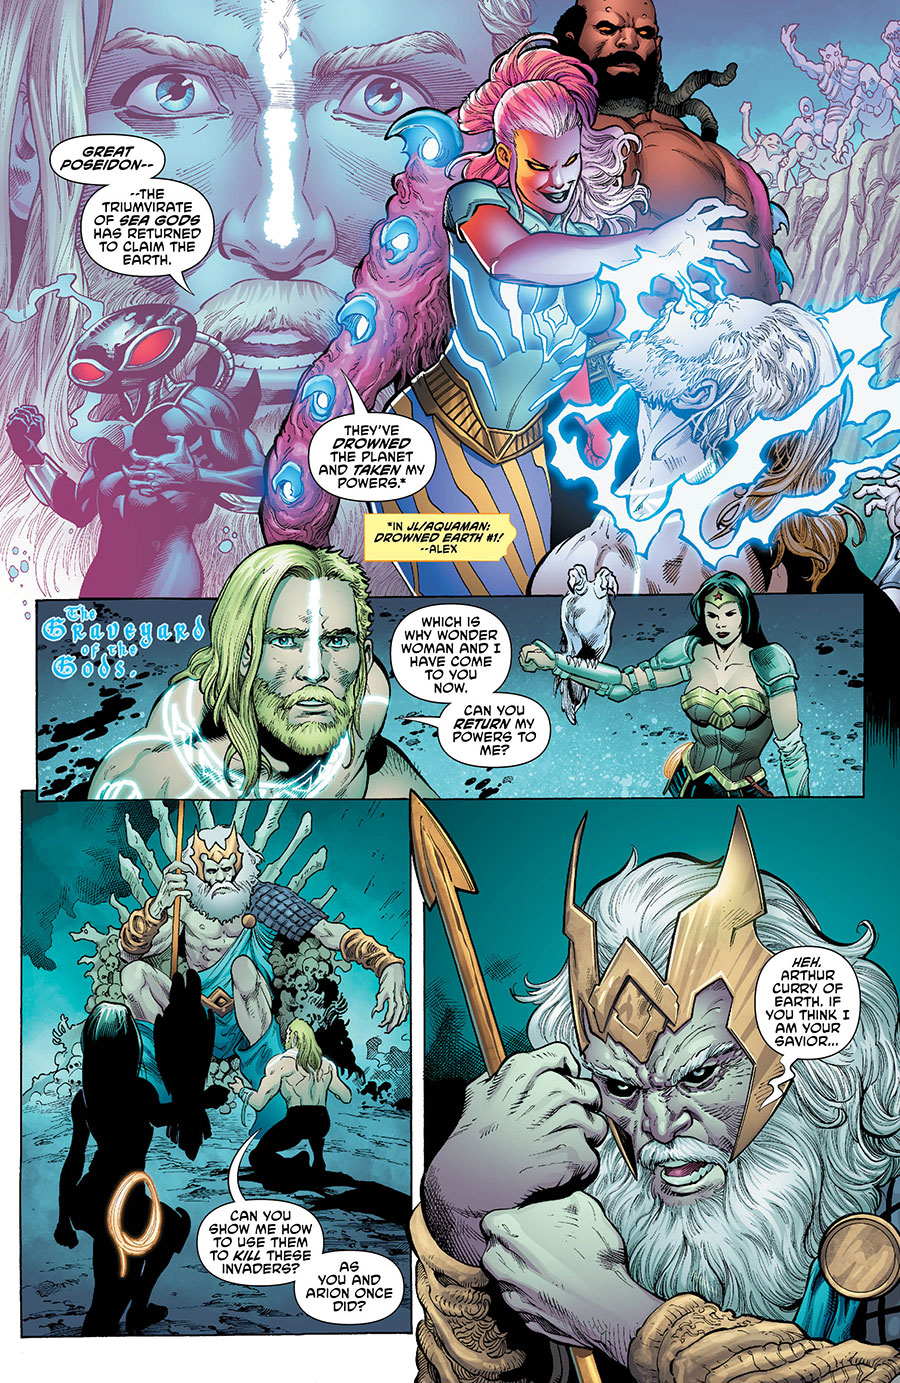 Aquaman 42-1 - DC Comics News